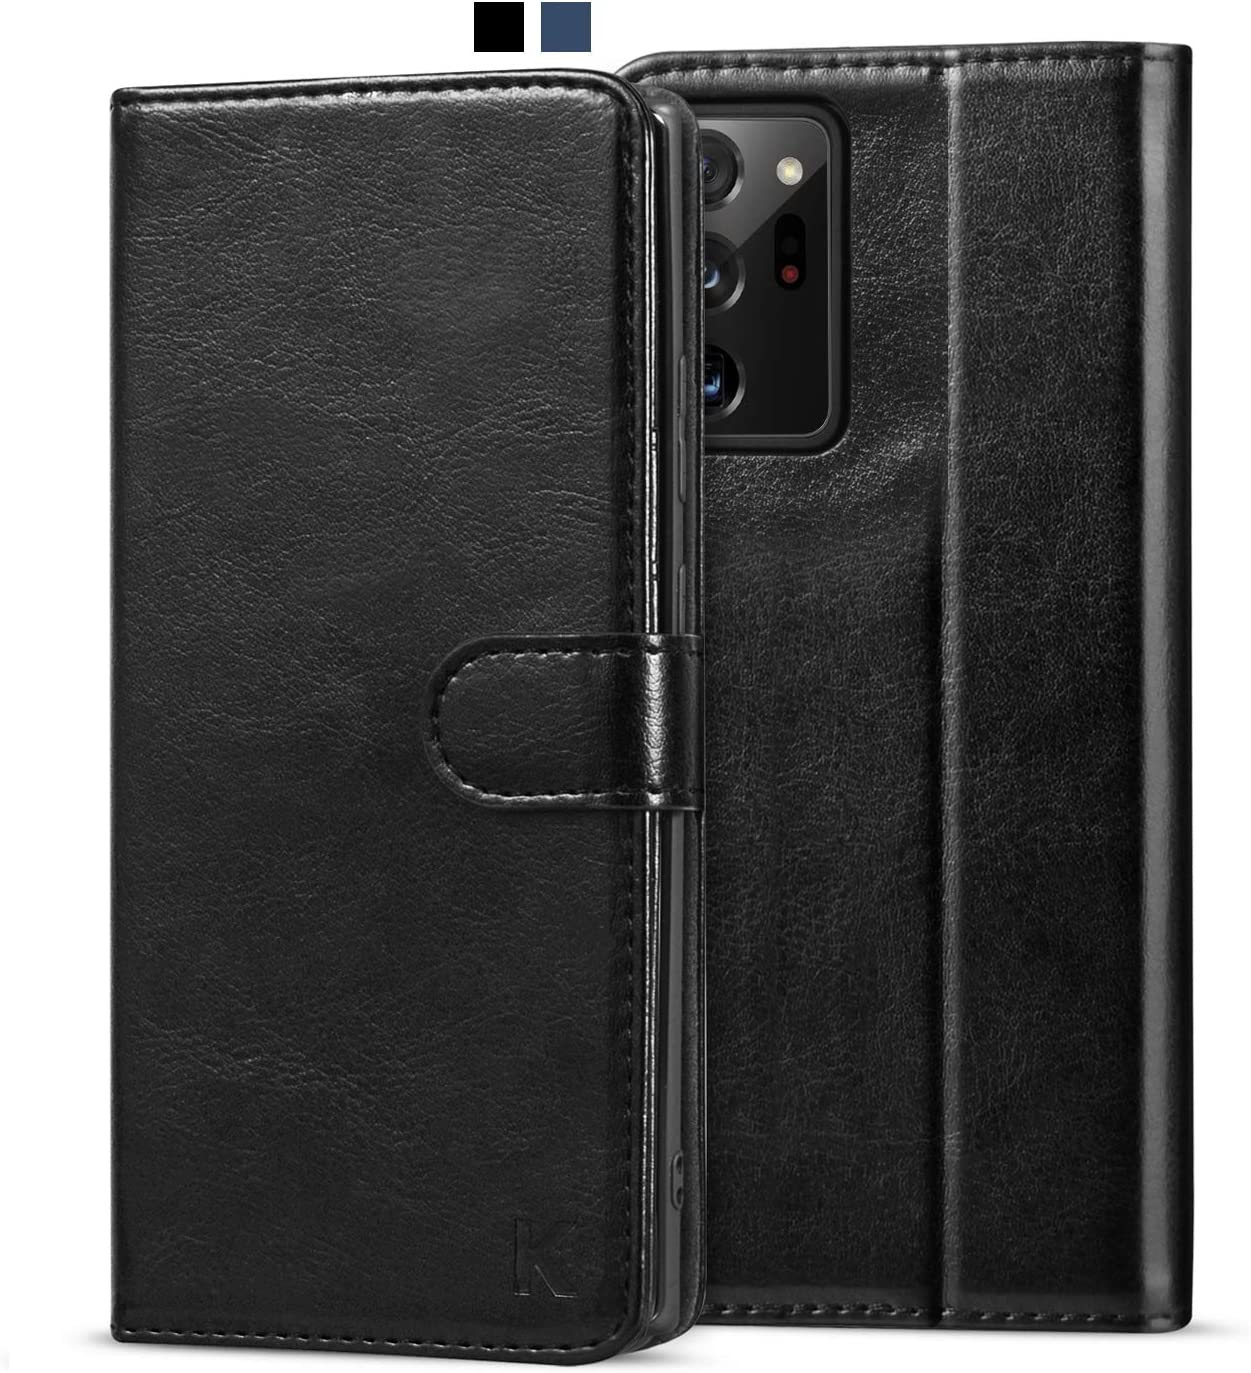 KILINO Galaxy Note 20 Ultra Wallet Case [S-Pen Fully Compatible] [RFID Blocking] [PU Leather] [Shock-Absorbent Bumper] [Card Slots] [Kickstand] Flip Folio Cover for Samsung Galaxy Note20 Ultra (Black)